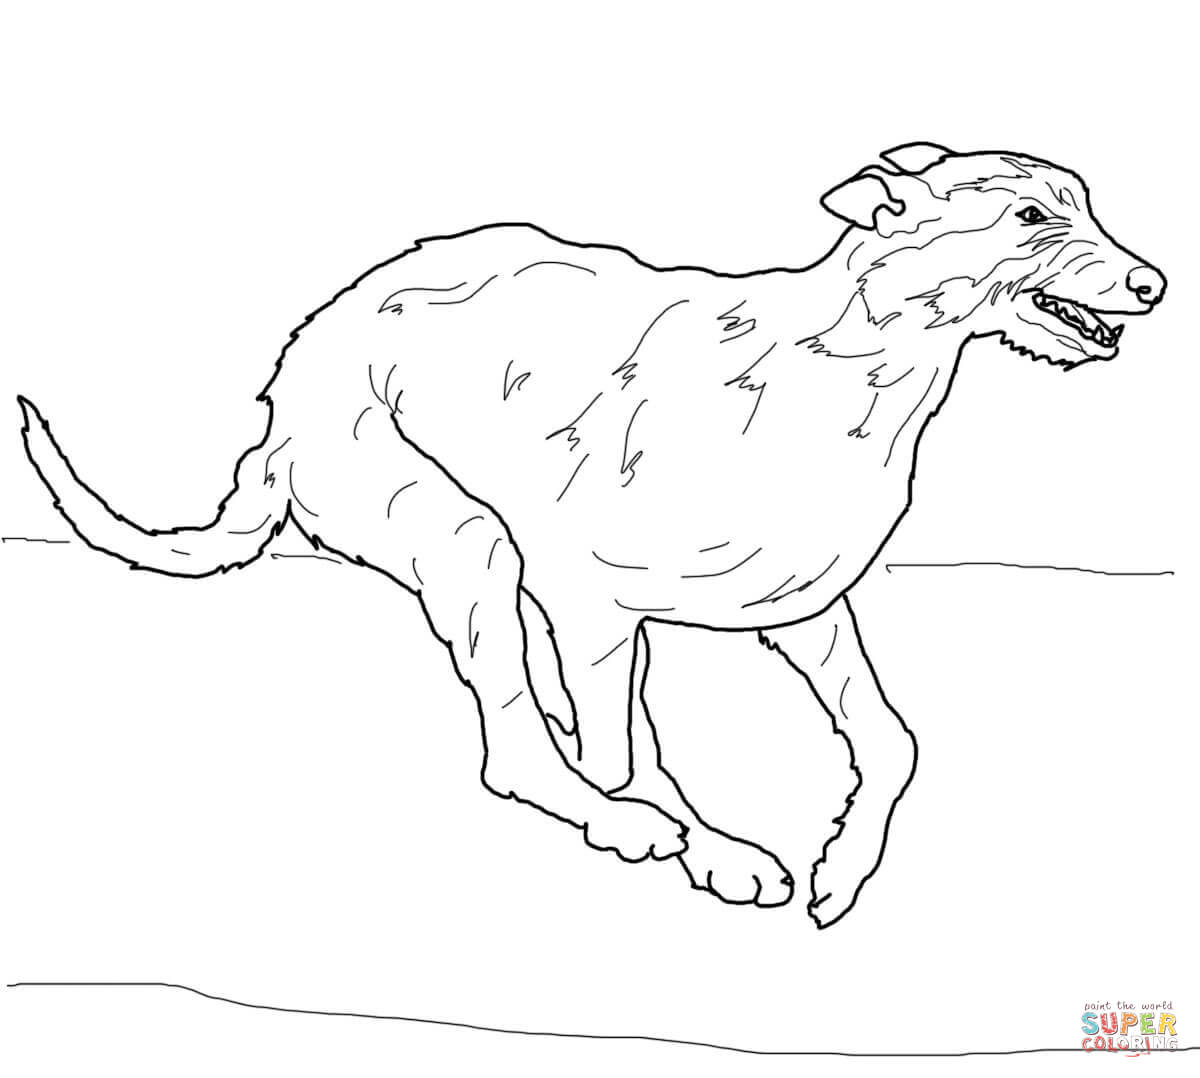 1200x1078 Irish Wolfhound Coloring Page Free Printable Coloring Pages